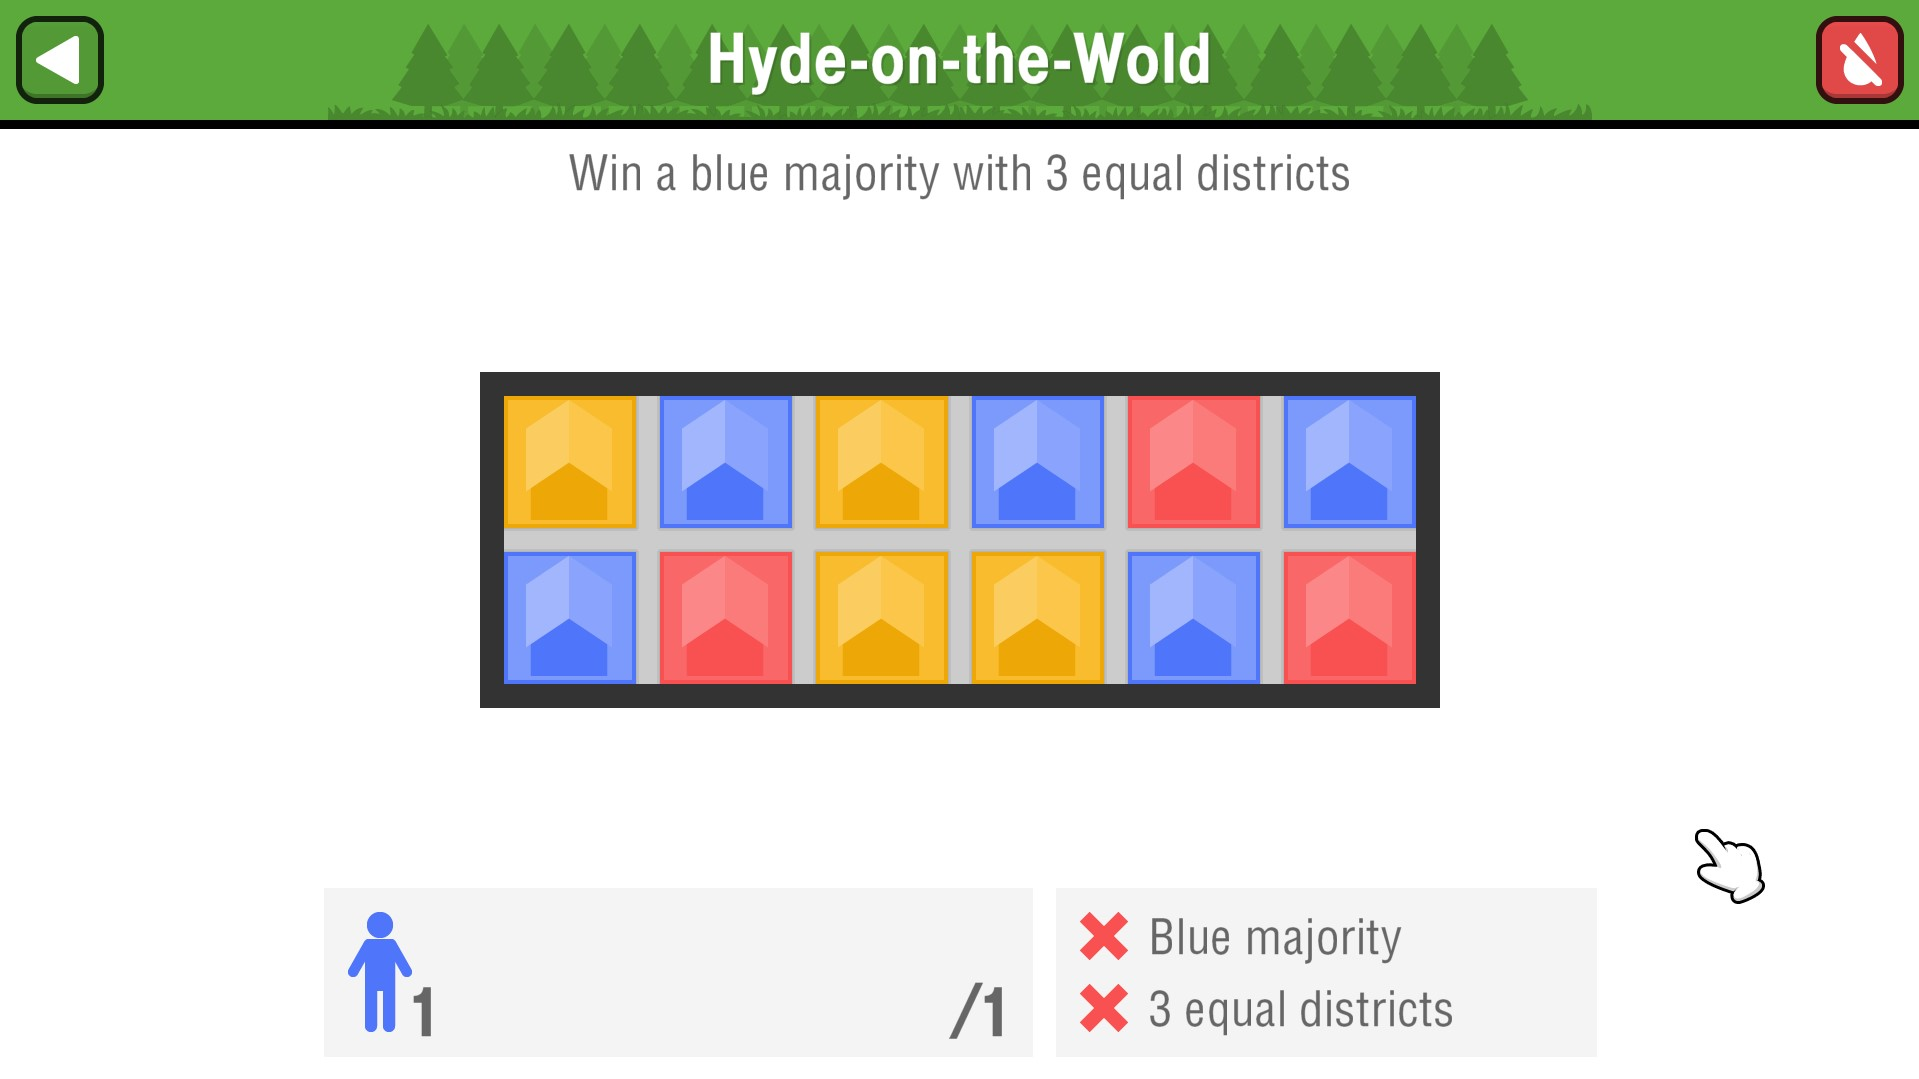 Hyde-on-the-Wold